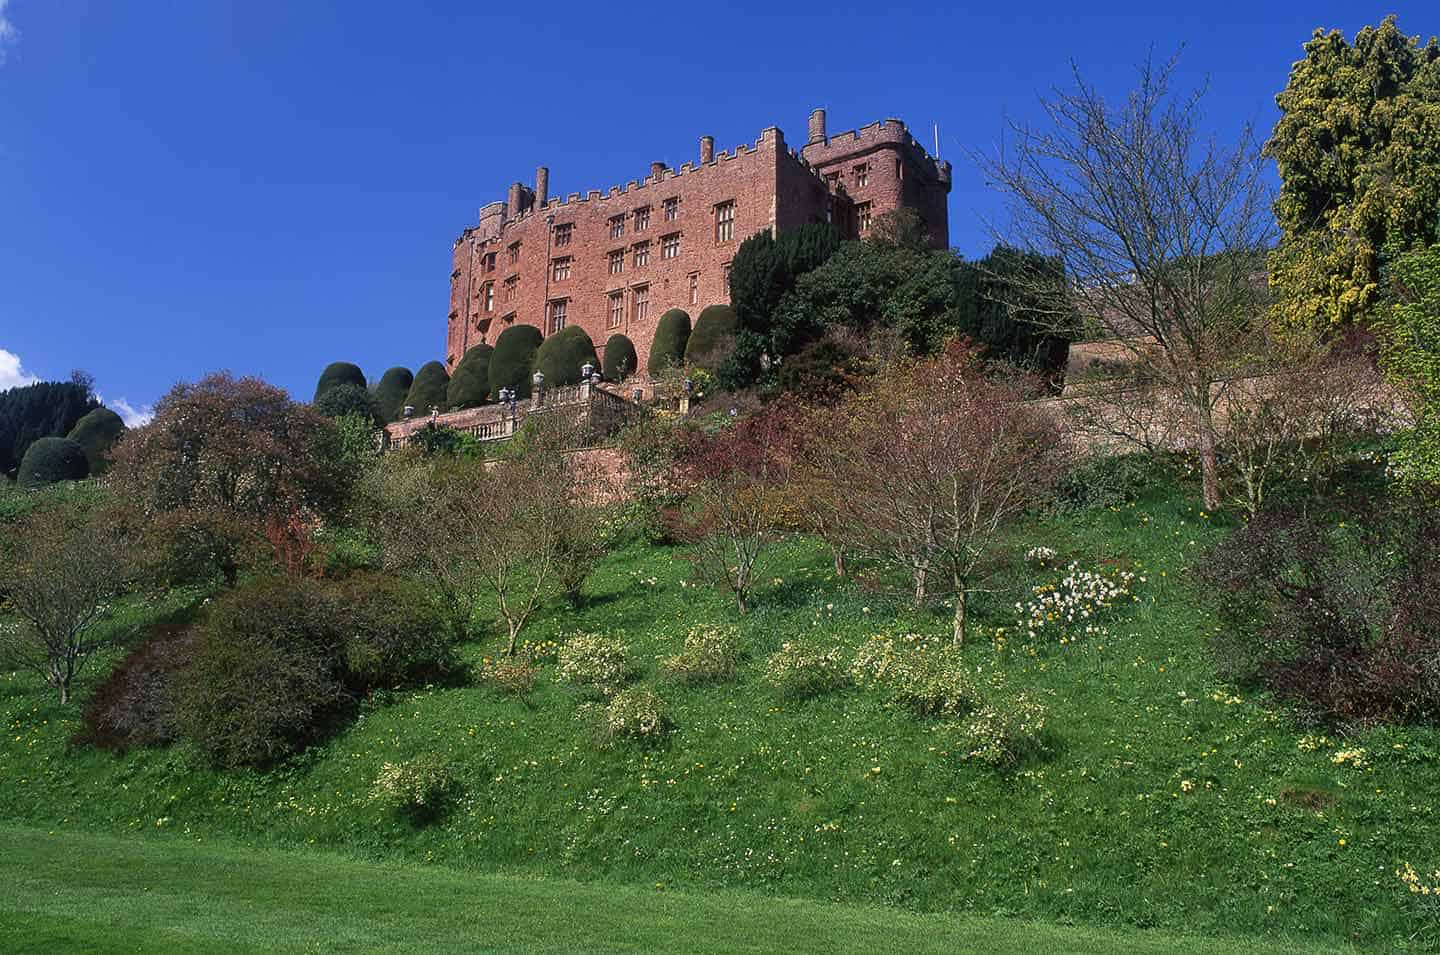 Image of Powis Castle and Gardens, Mid Wales